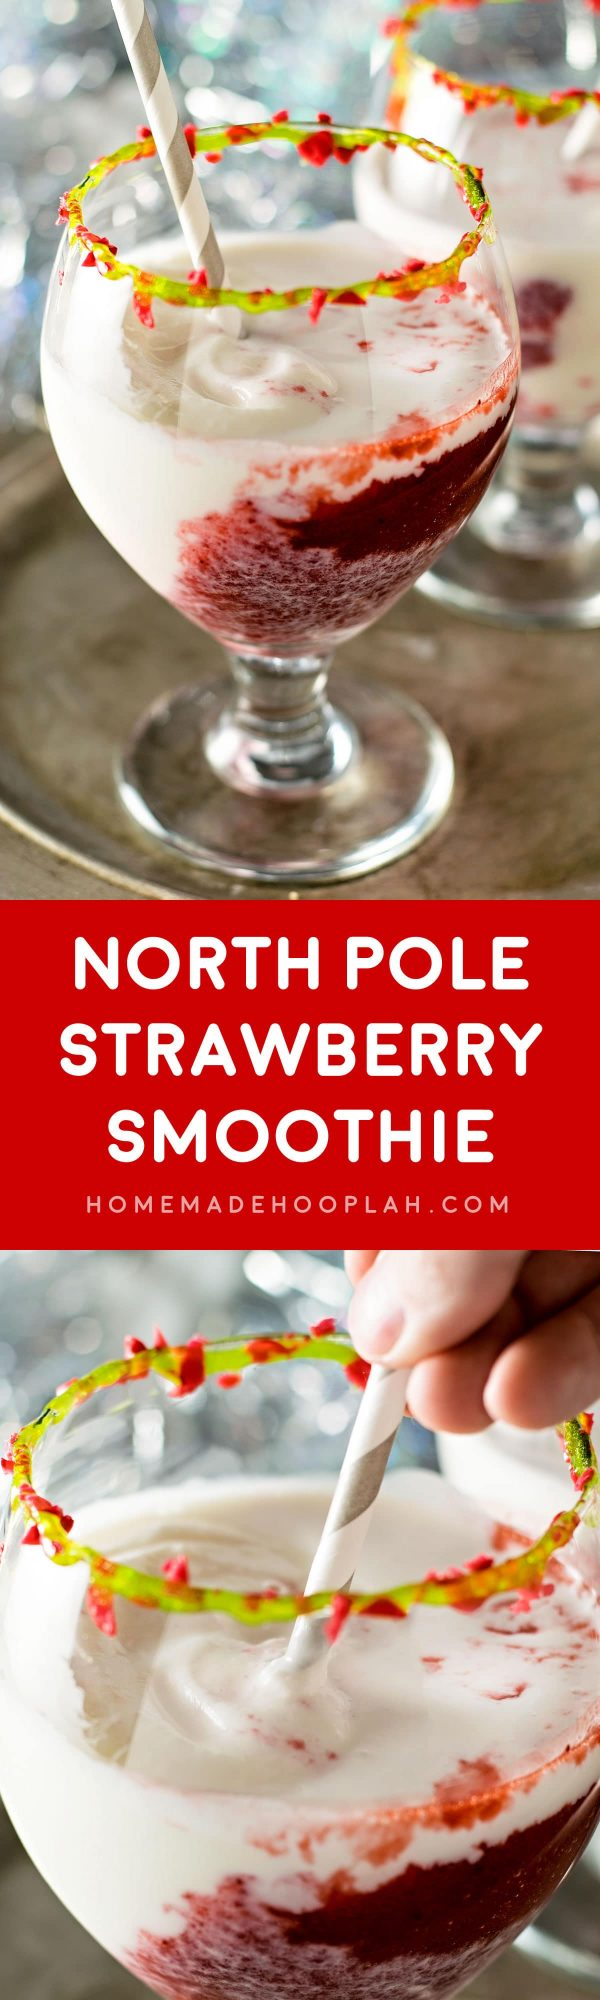 North Pole Strawberry Smoothie! Blended strawberries and frozen vanilla yogurt mix to create this festive holiday drink. Rim the glass with green decorating gel and sprinkle with crushed strawberry candy canes for an extra treat!   HomemadeHooplah.com